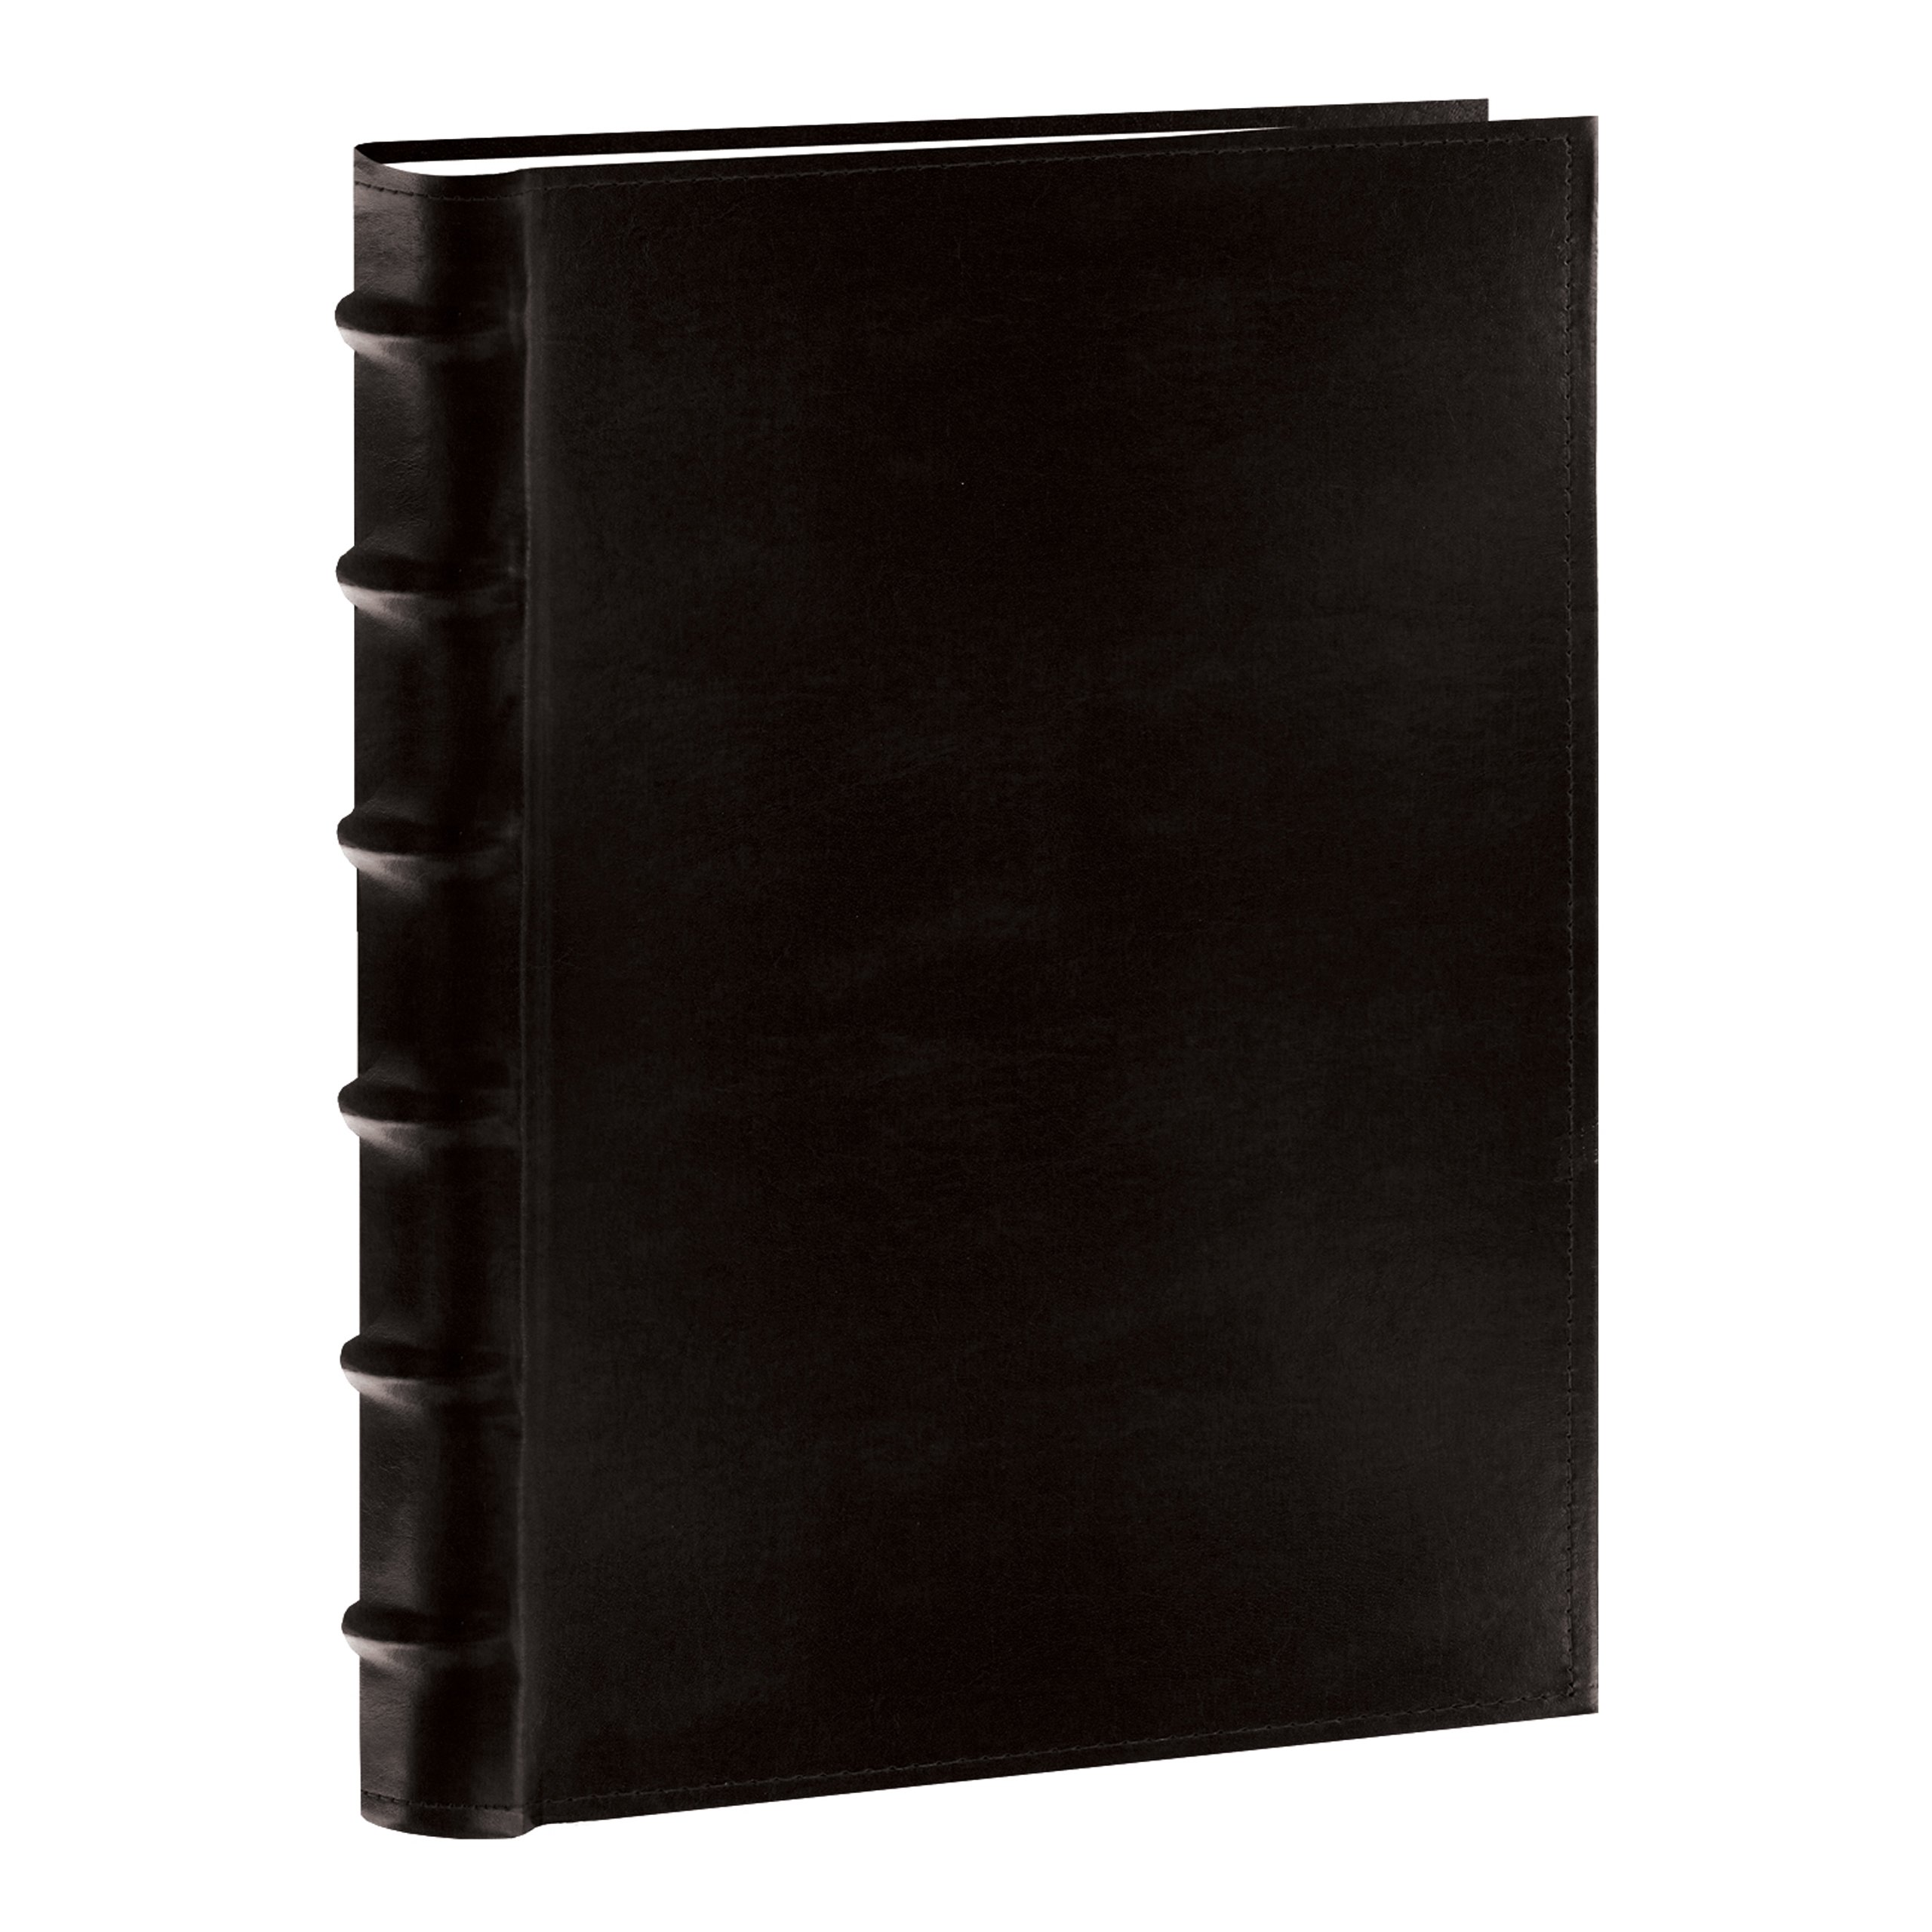 Pioneer Sewn Bonded Leather BookBound Bi-Directional Photo Album, Holds 300 4x6'' Photos, 3 Per Page. Color: Black. by Pioneer Photo Albums